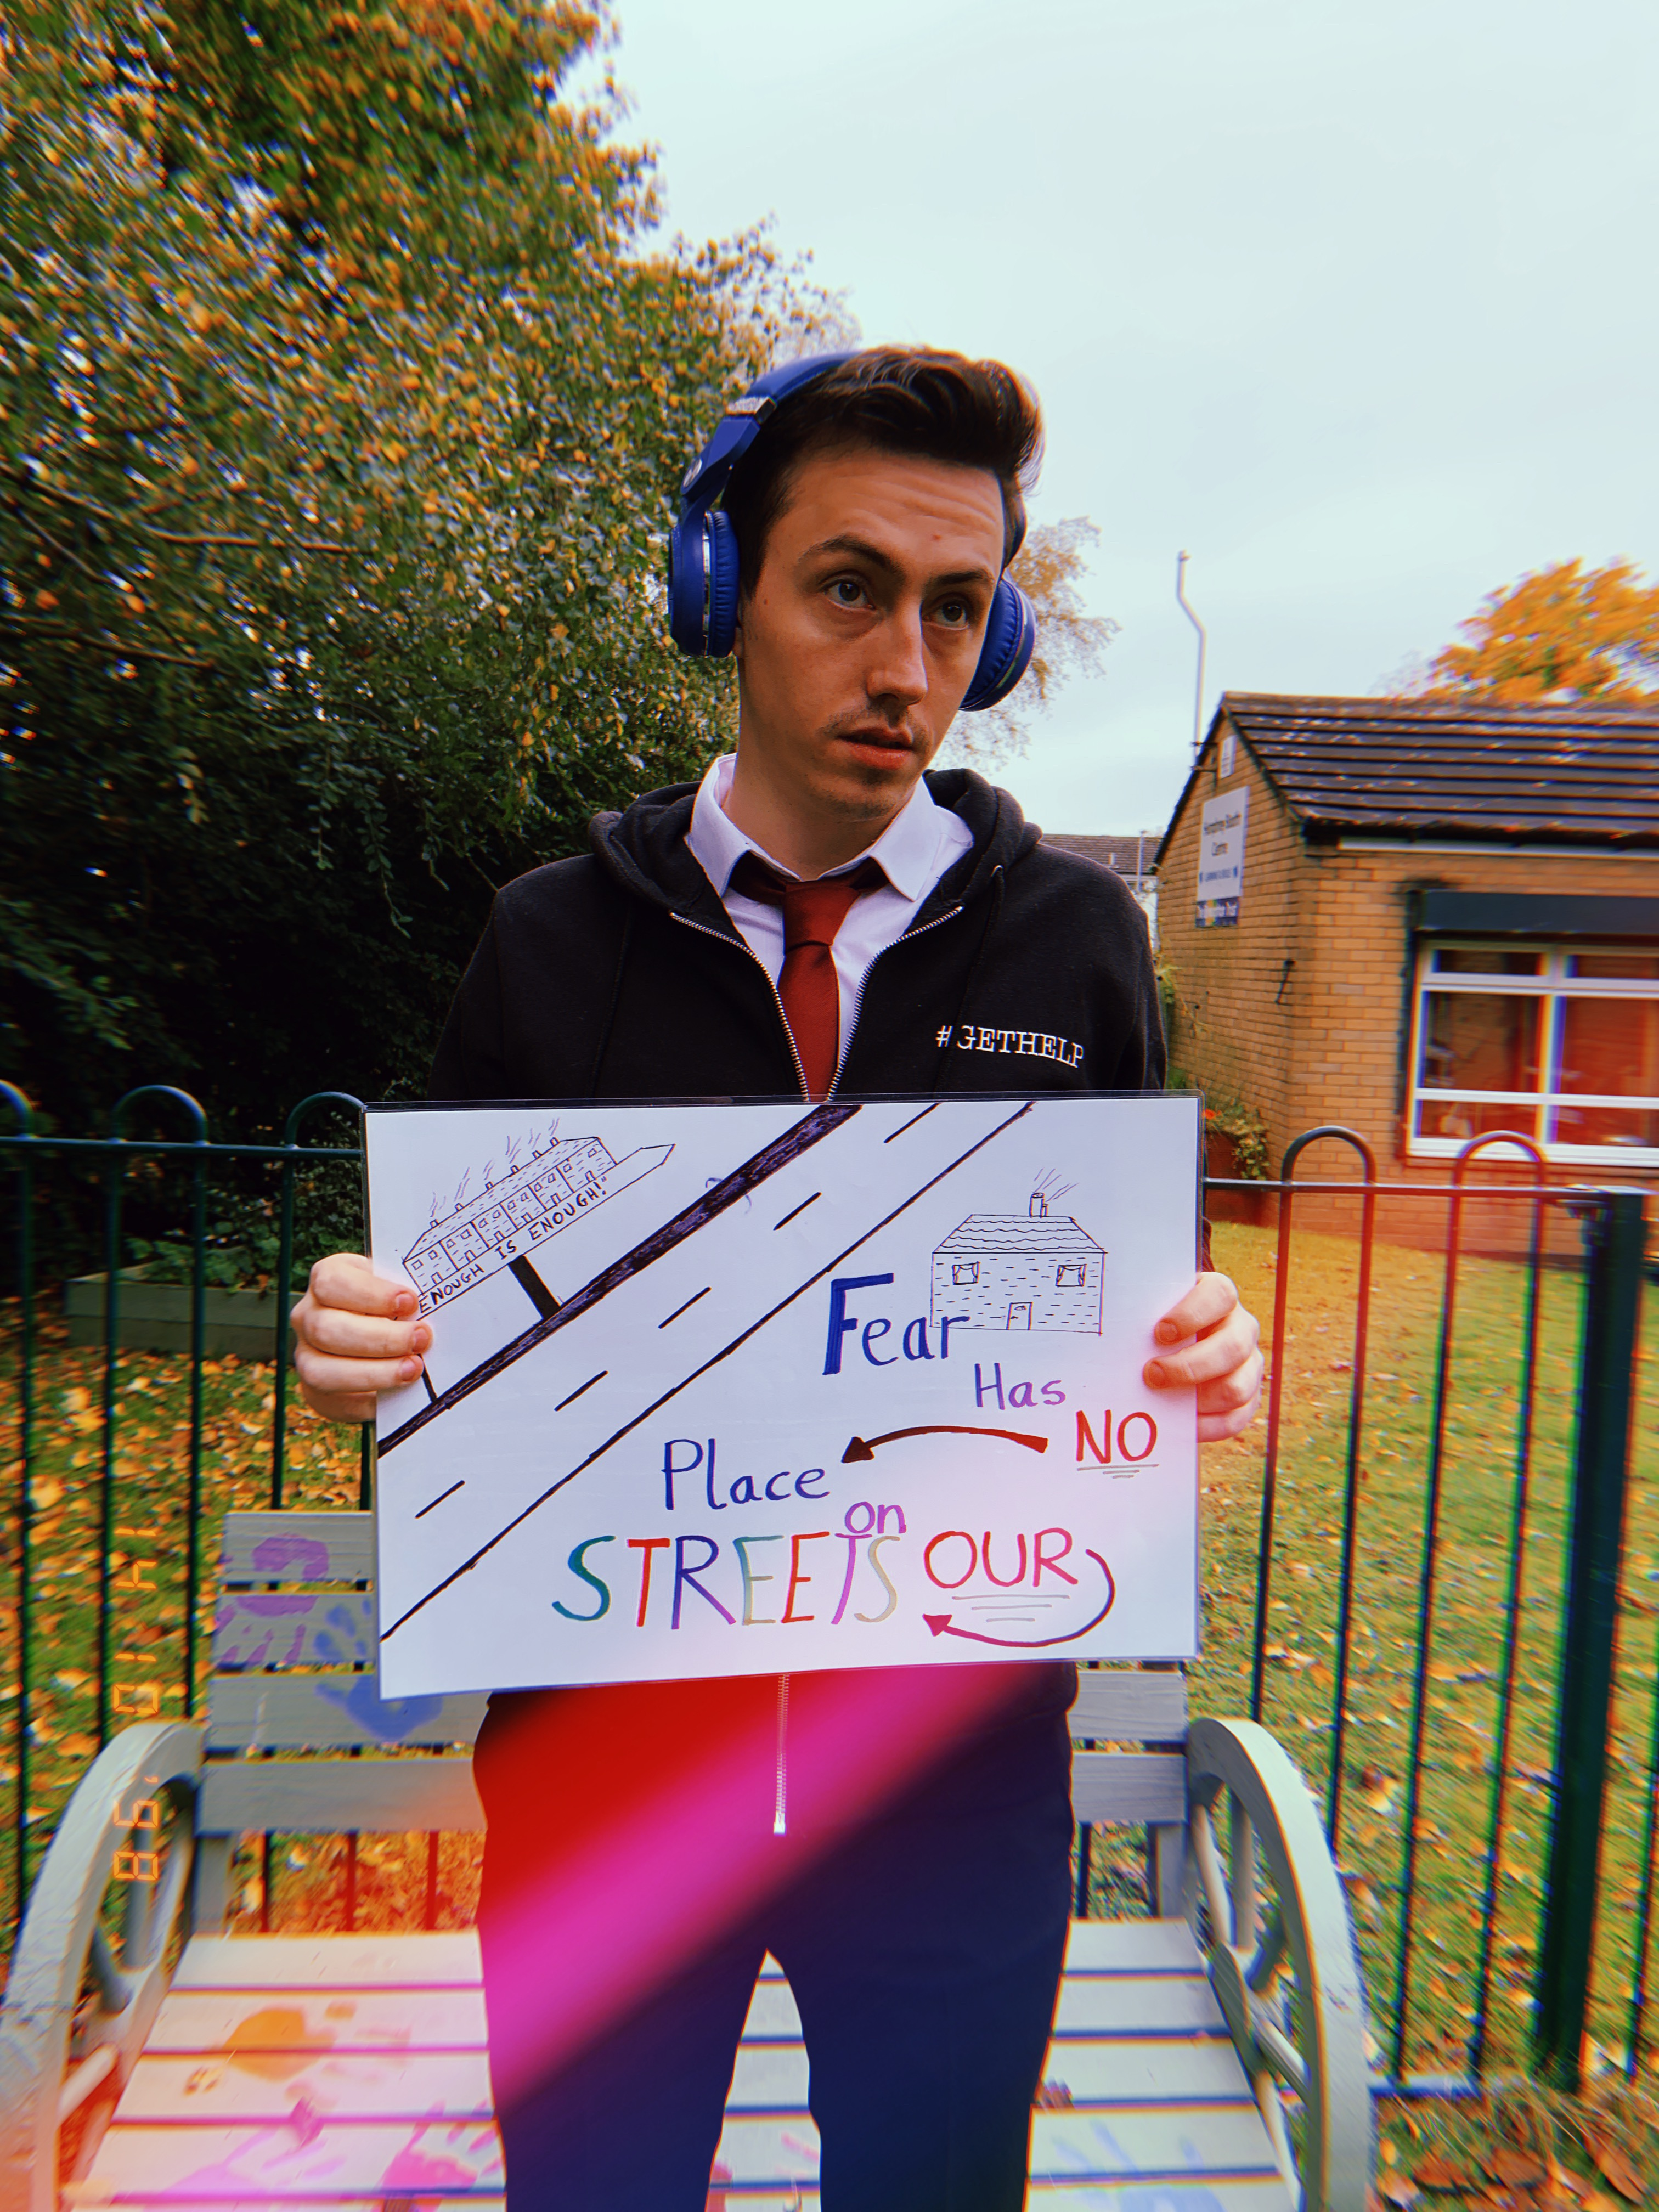 'Fear has no place on our streets'